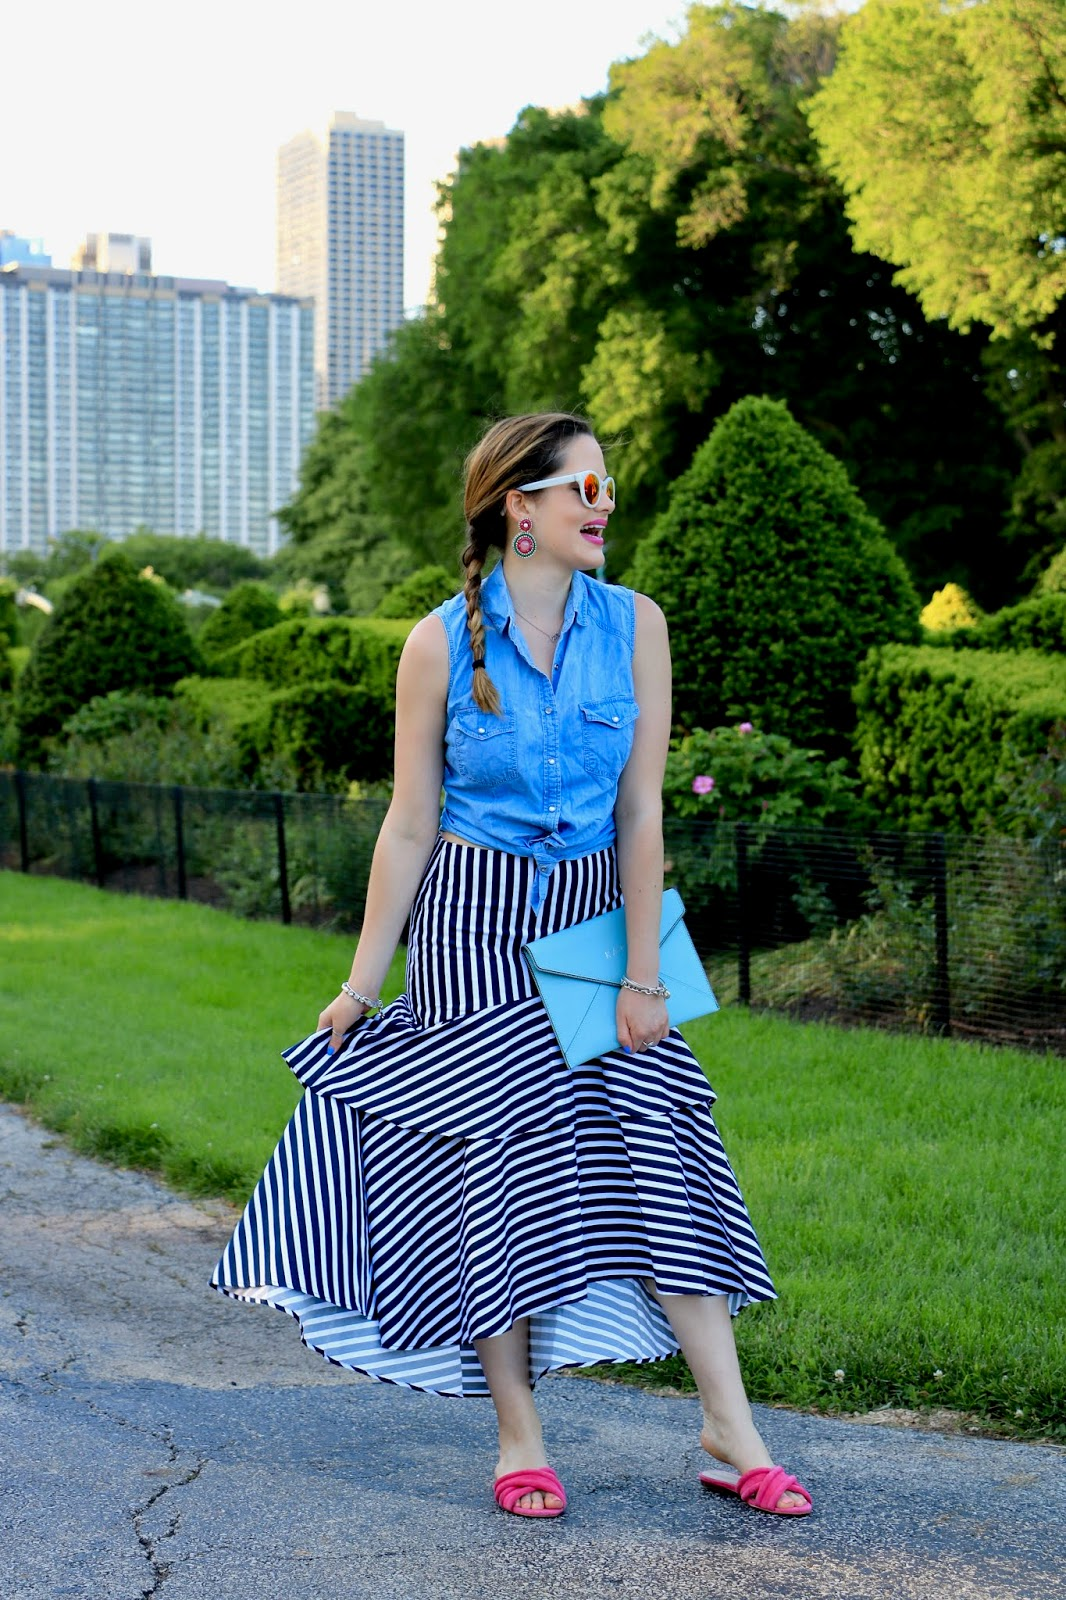 Nyc fashion blogger Kathleen Harper's summer outfit ideas